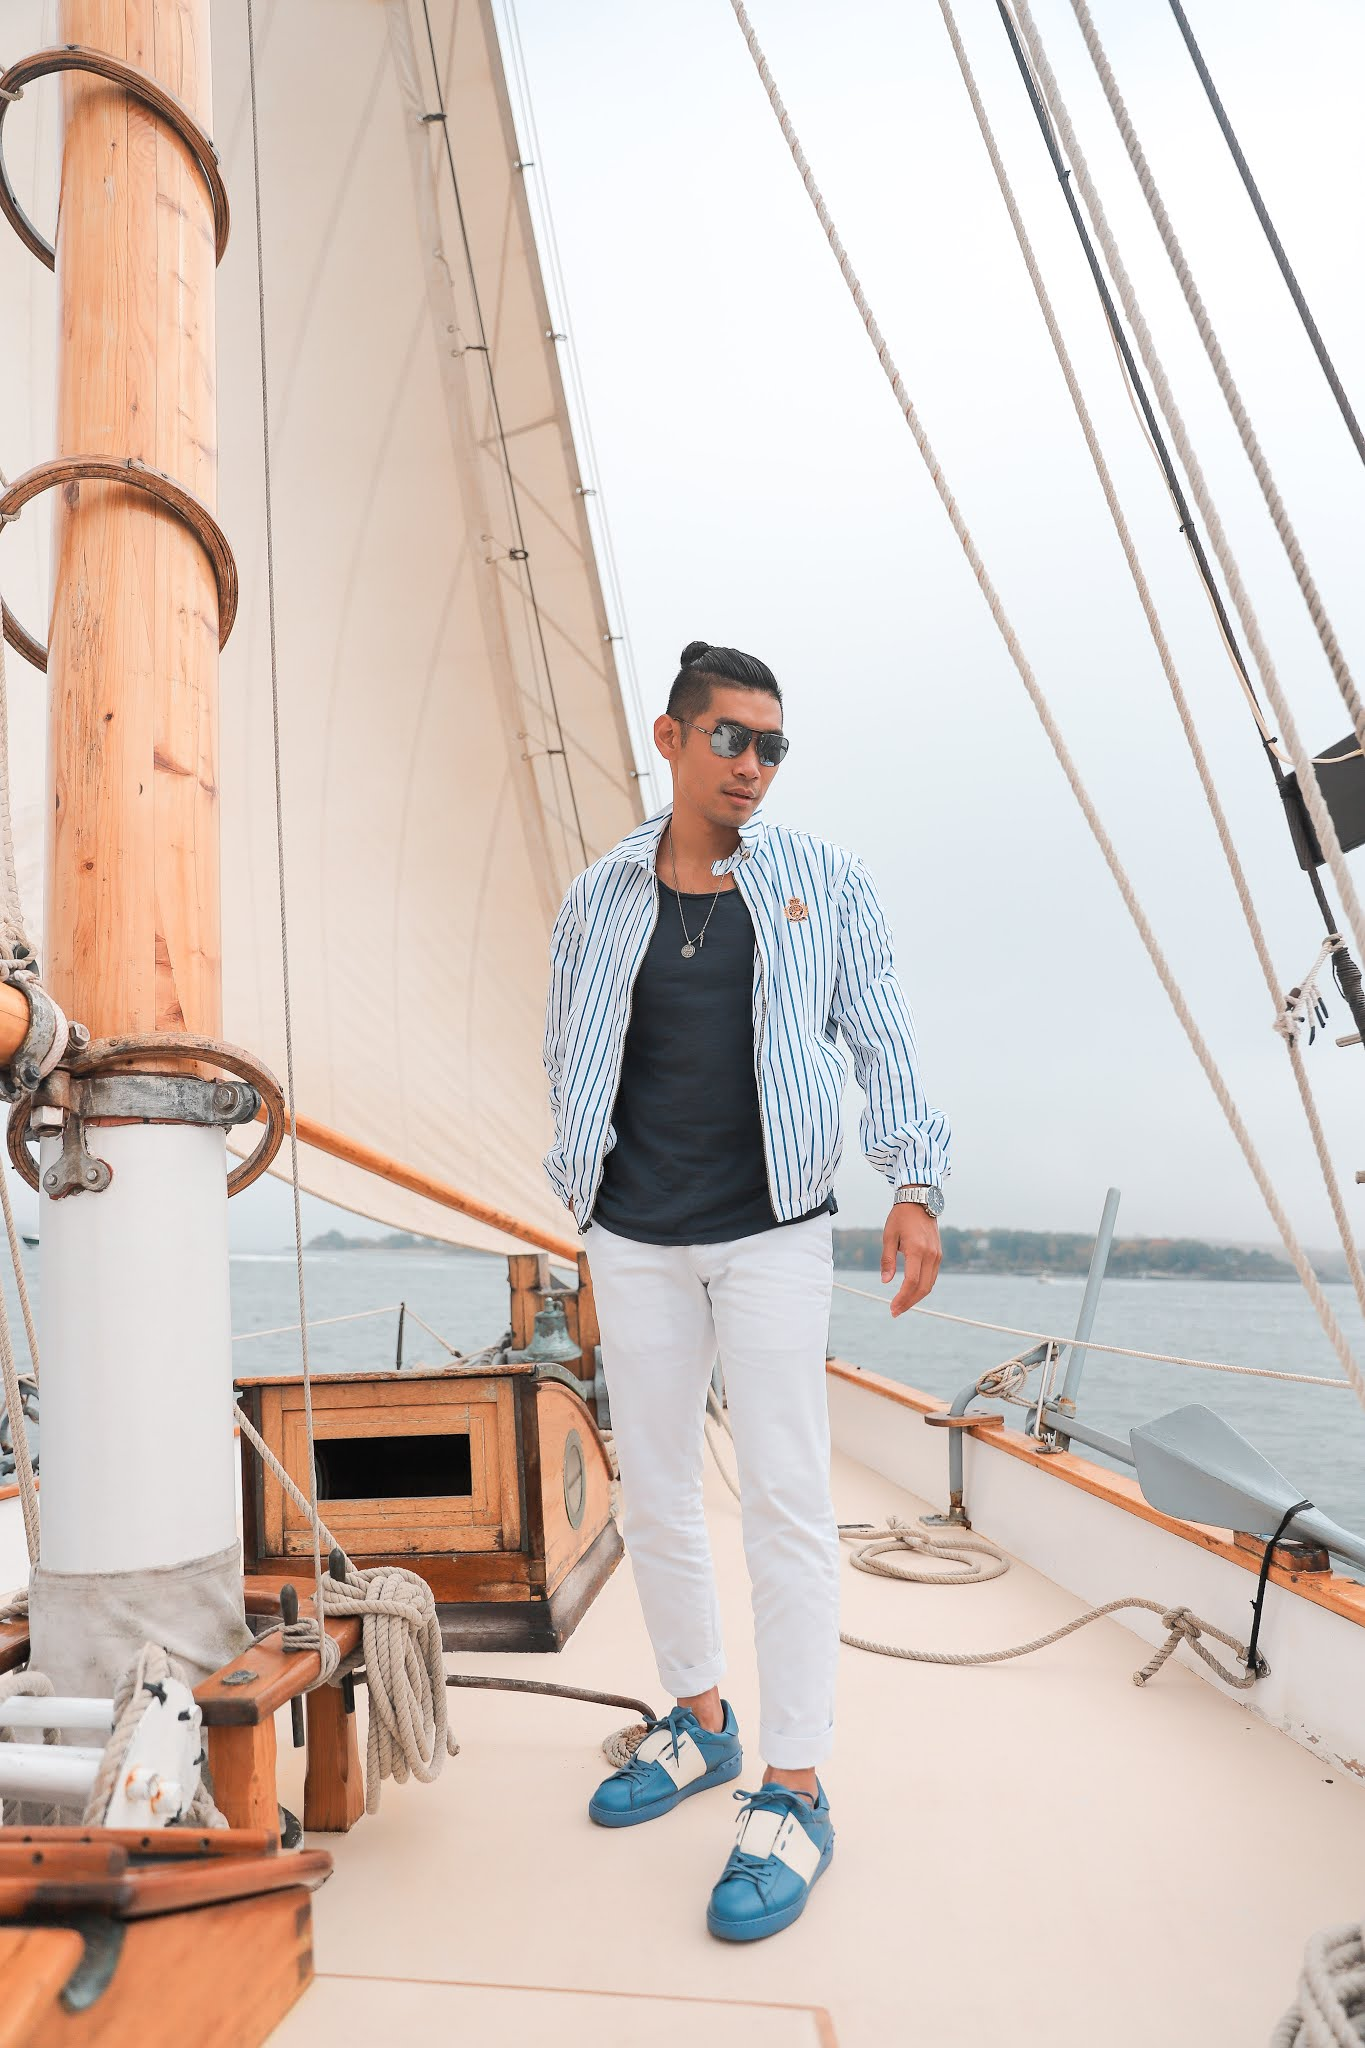 Fall Outfit Inspiration for Men 2020 | Leo Chan wearing Nautical Outfit